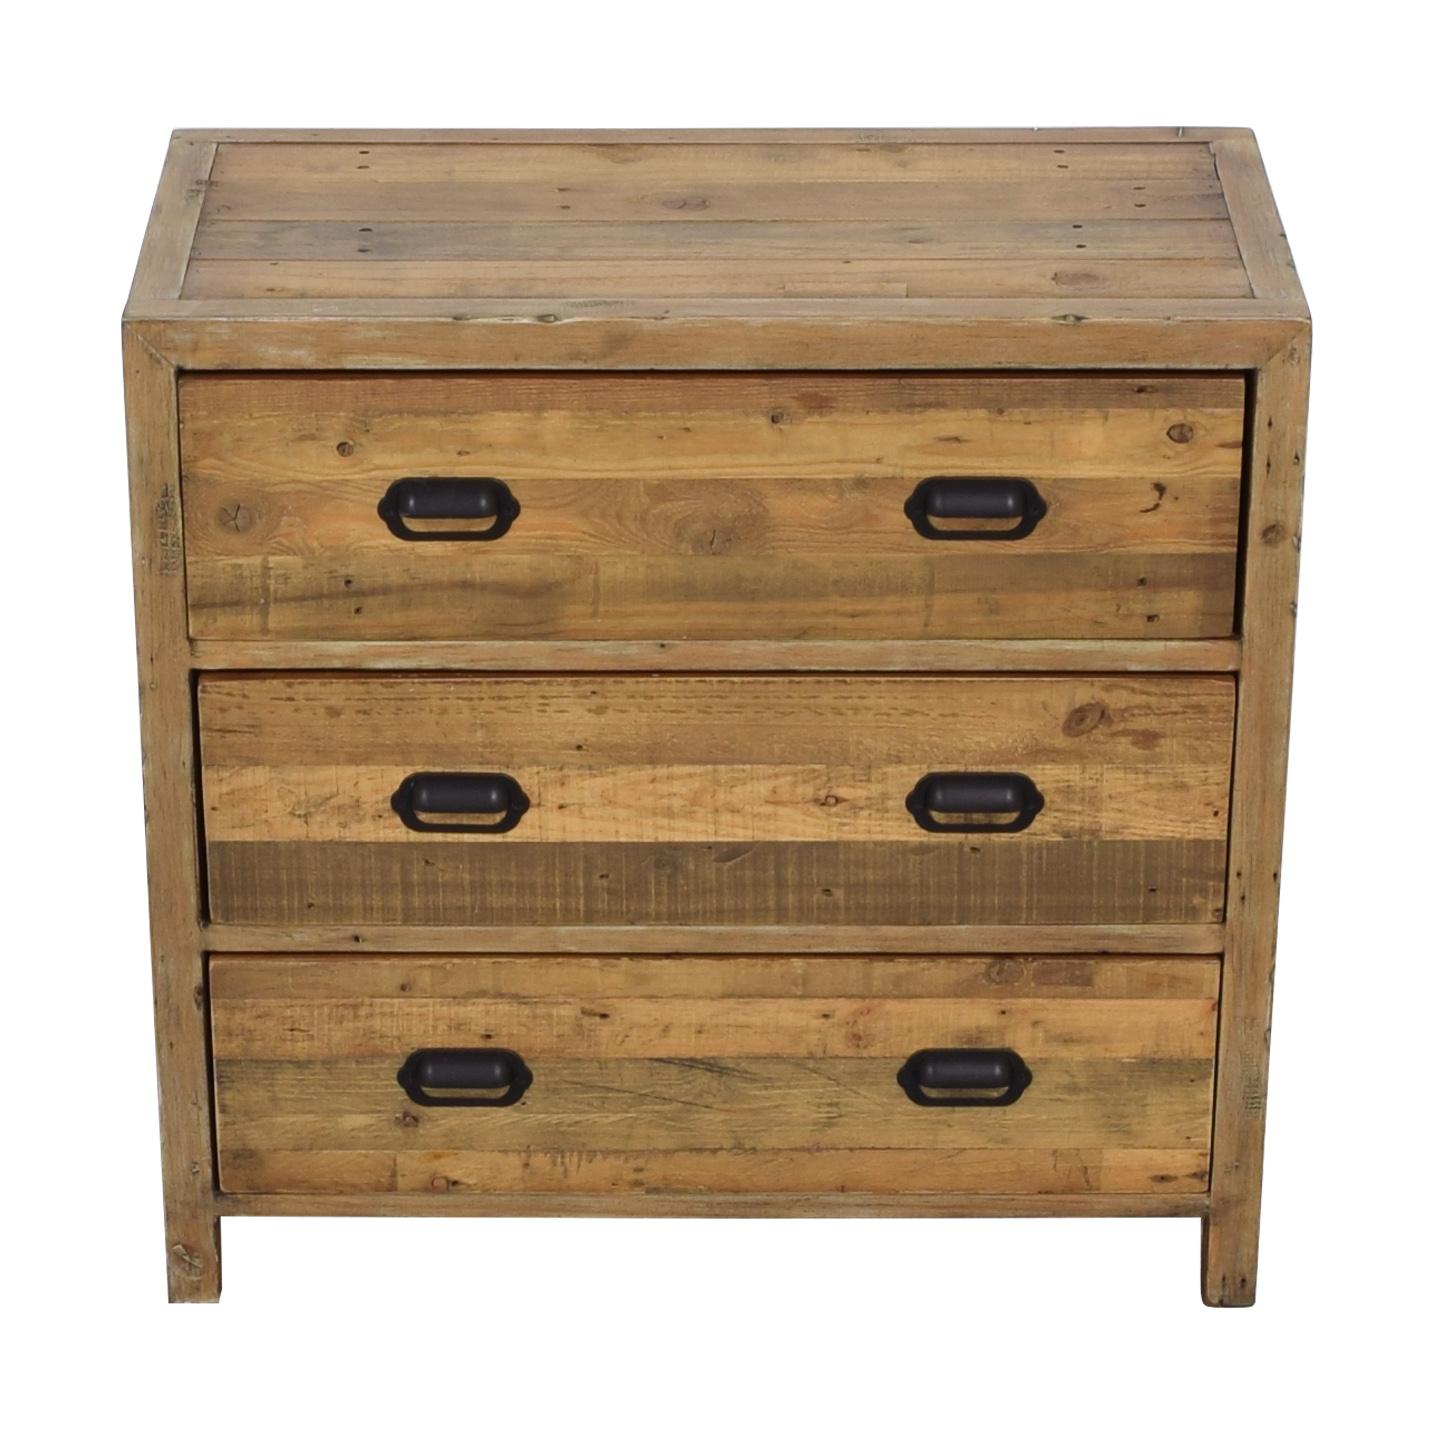 buy PGT Reclaimed PGT Reclaimed Chest of Drawers online